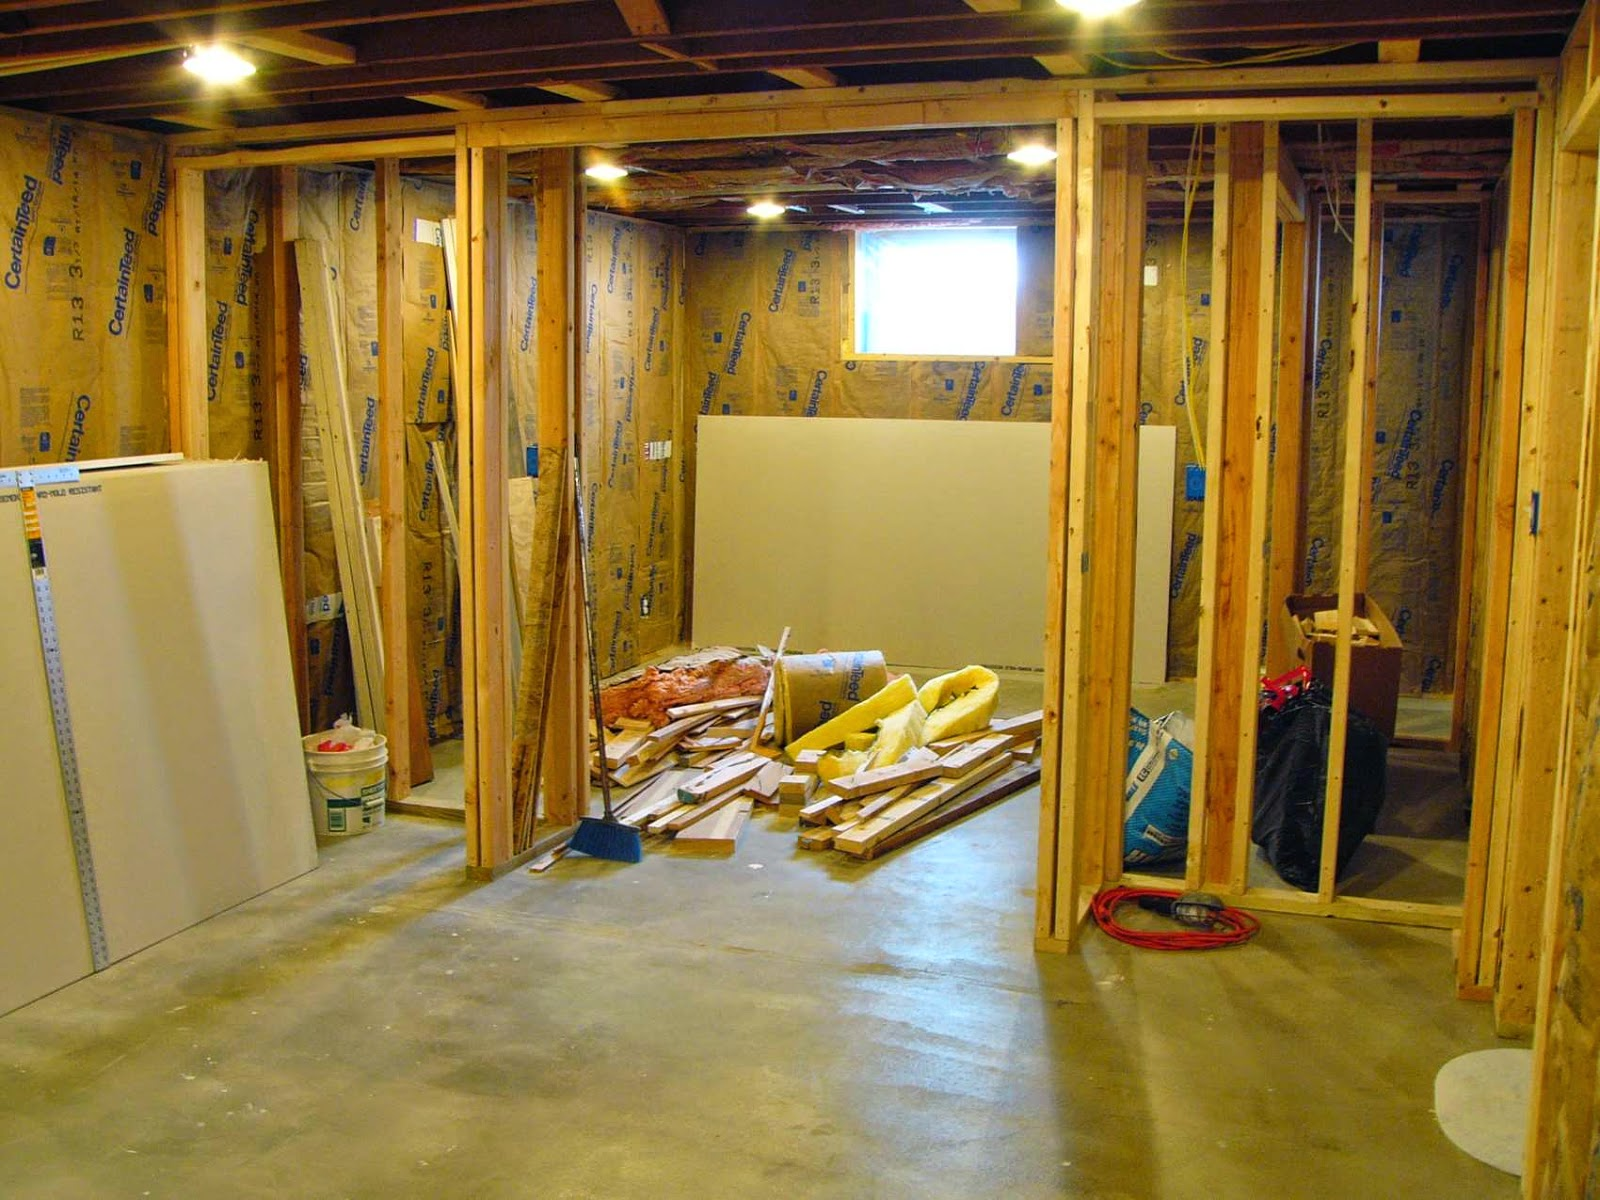 Three Things Very Dull Indeed Basement Remodel Project Framing Overview & Three Things Very Dull Indeed: Basement Remodel Project: Framing ...